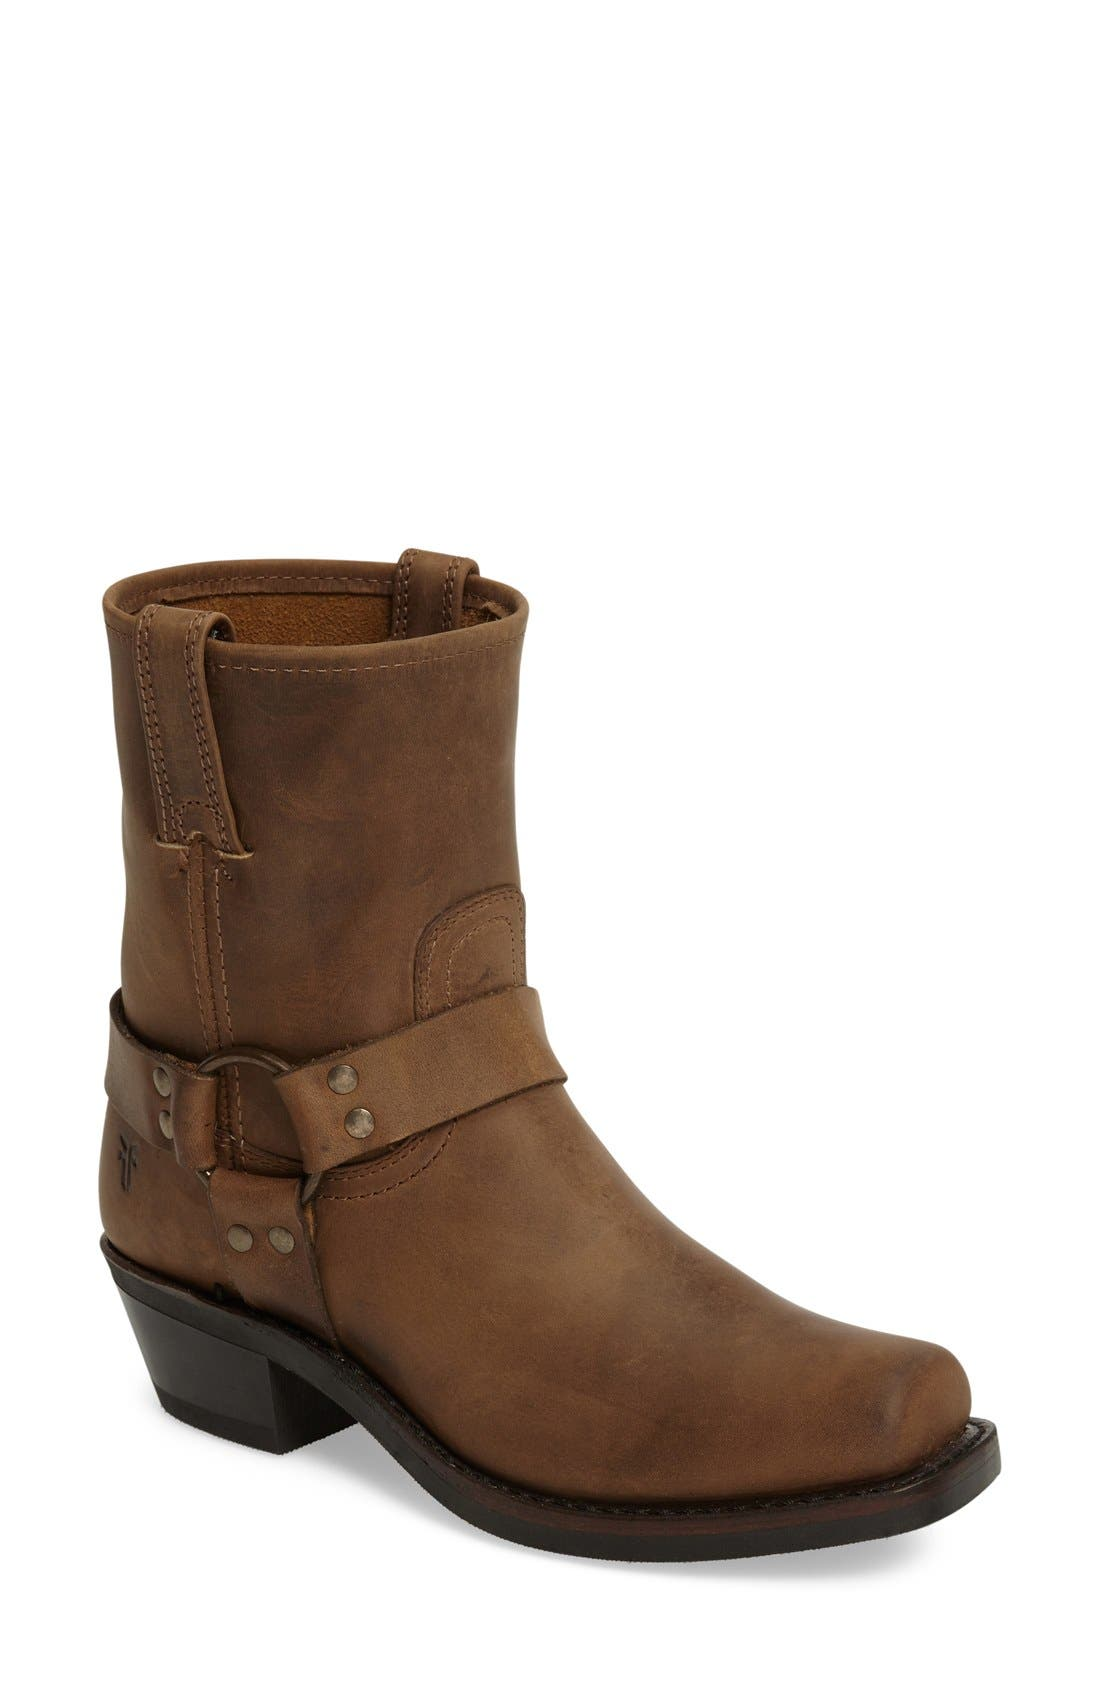 Harness Square Toe Engineer Boot,                         Main,                         color, Tan